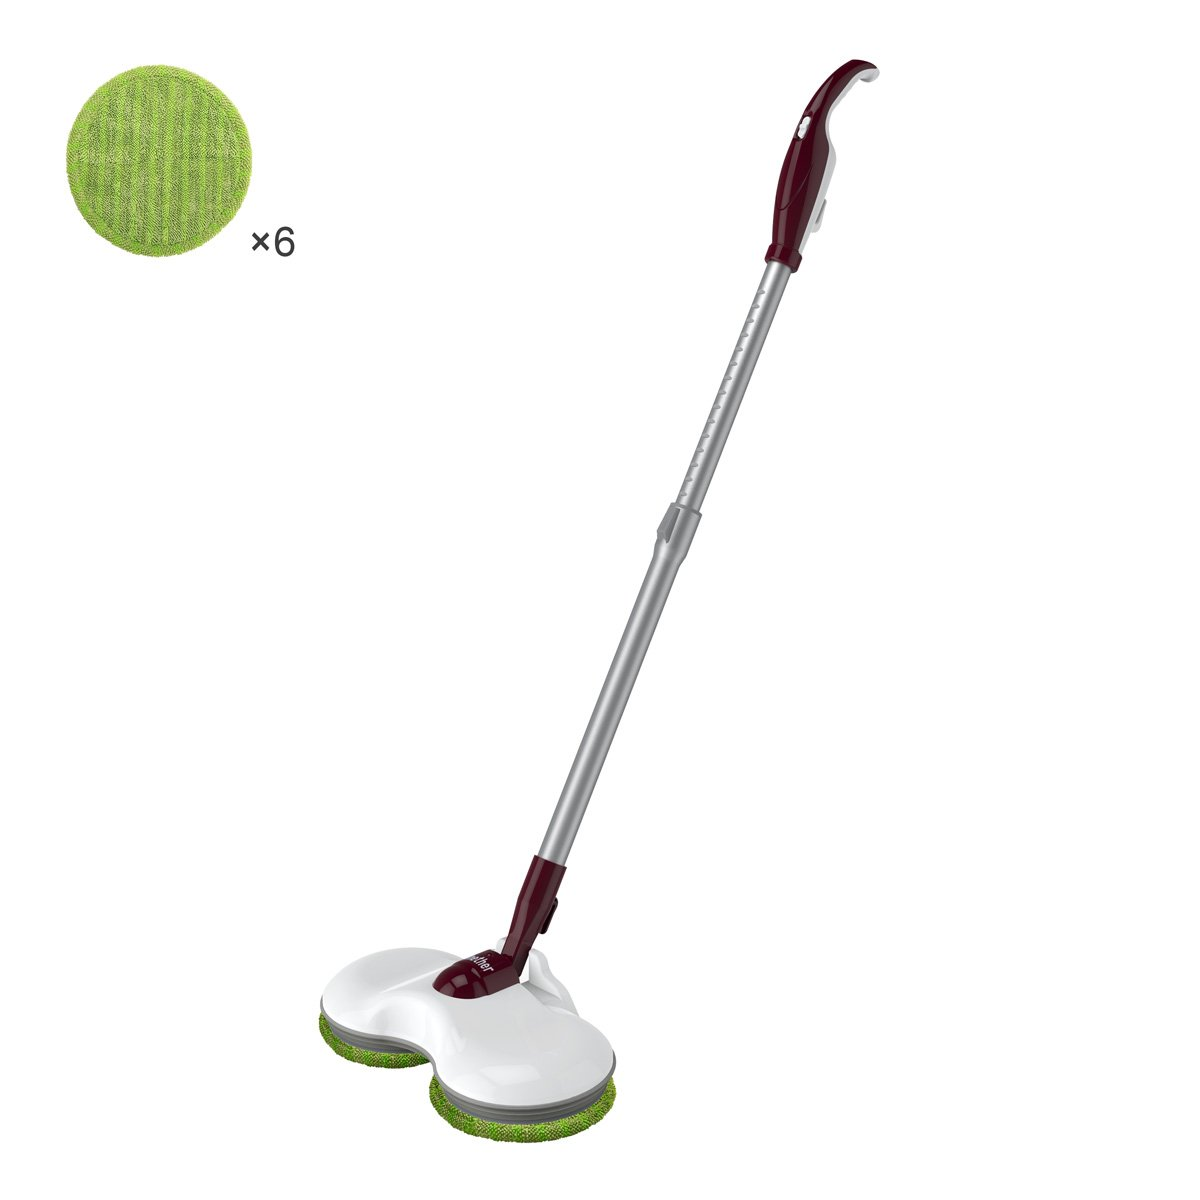 Finether Plug-In Electric Mop Cleaner Sweeper with Dual Spin Mop Heads, 180° Swivel Extendable Handle, Energy-Saving Scrubber Polisher for Home Hard Floor Wood Laminate Tile, White by Finether